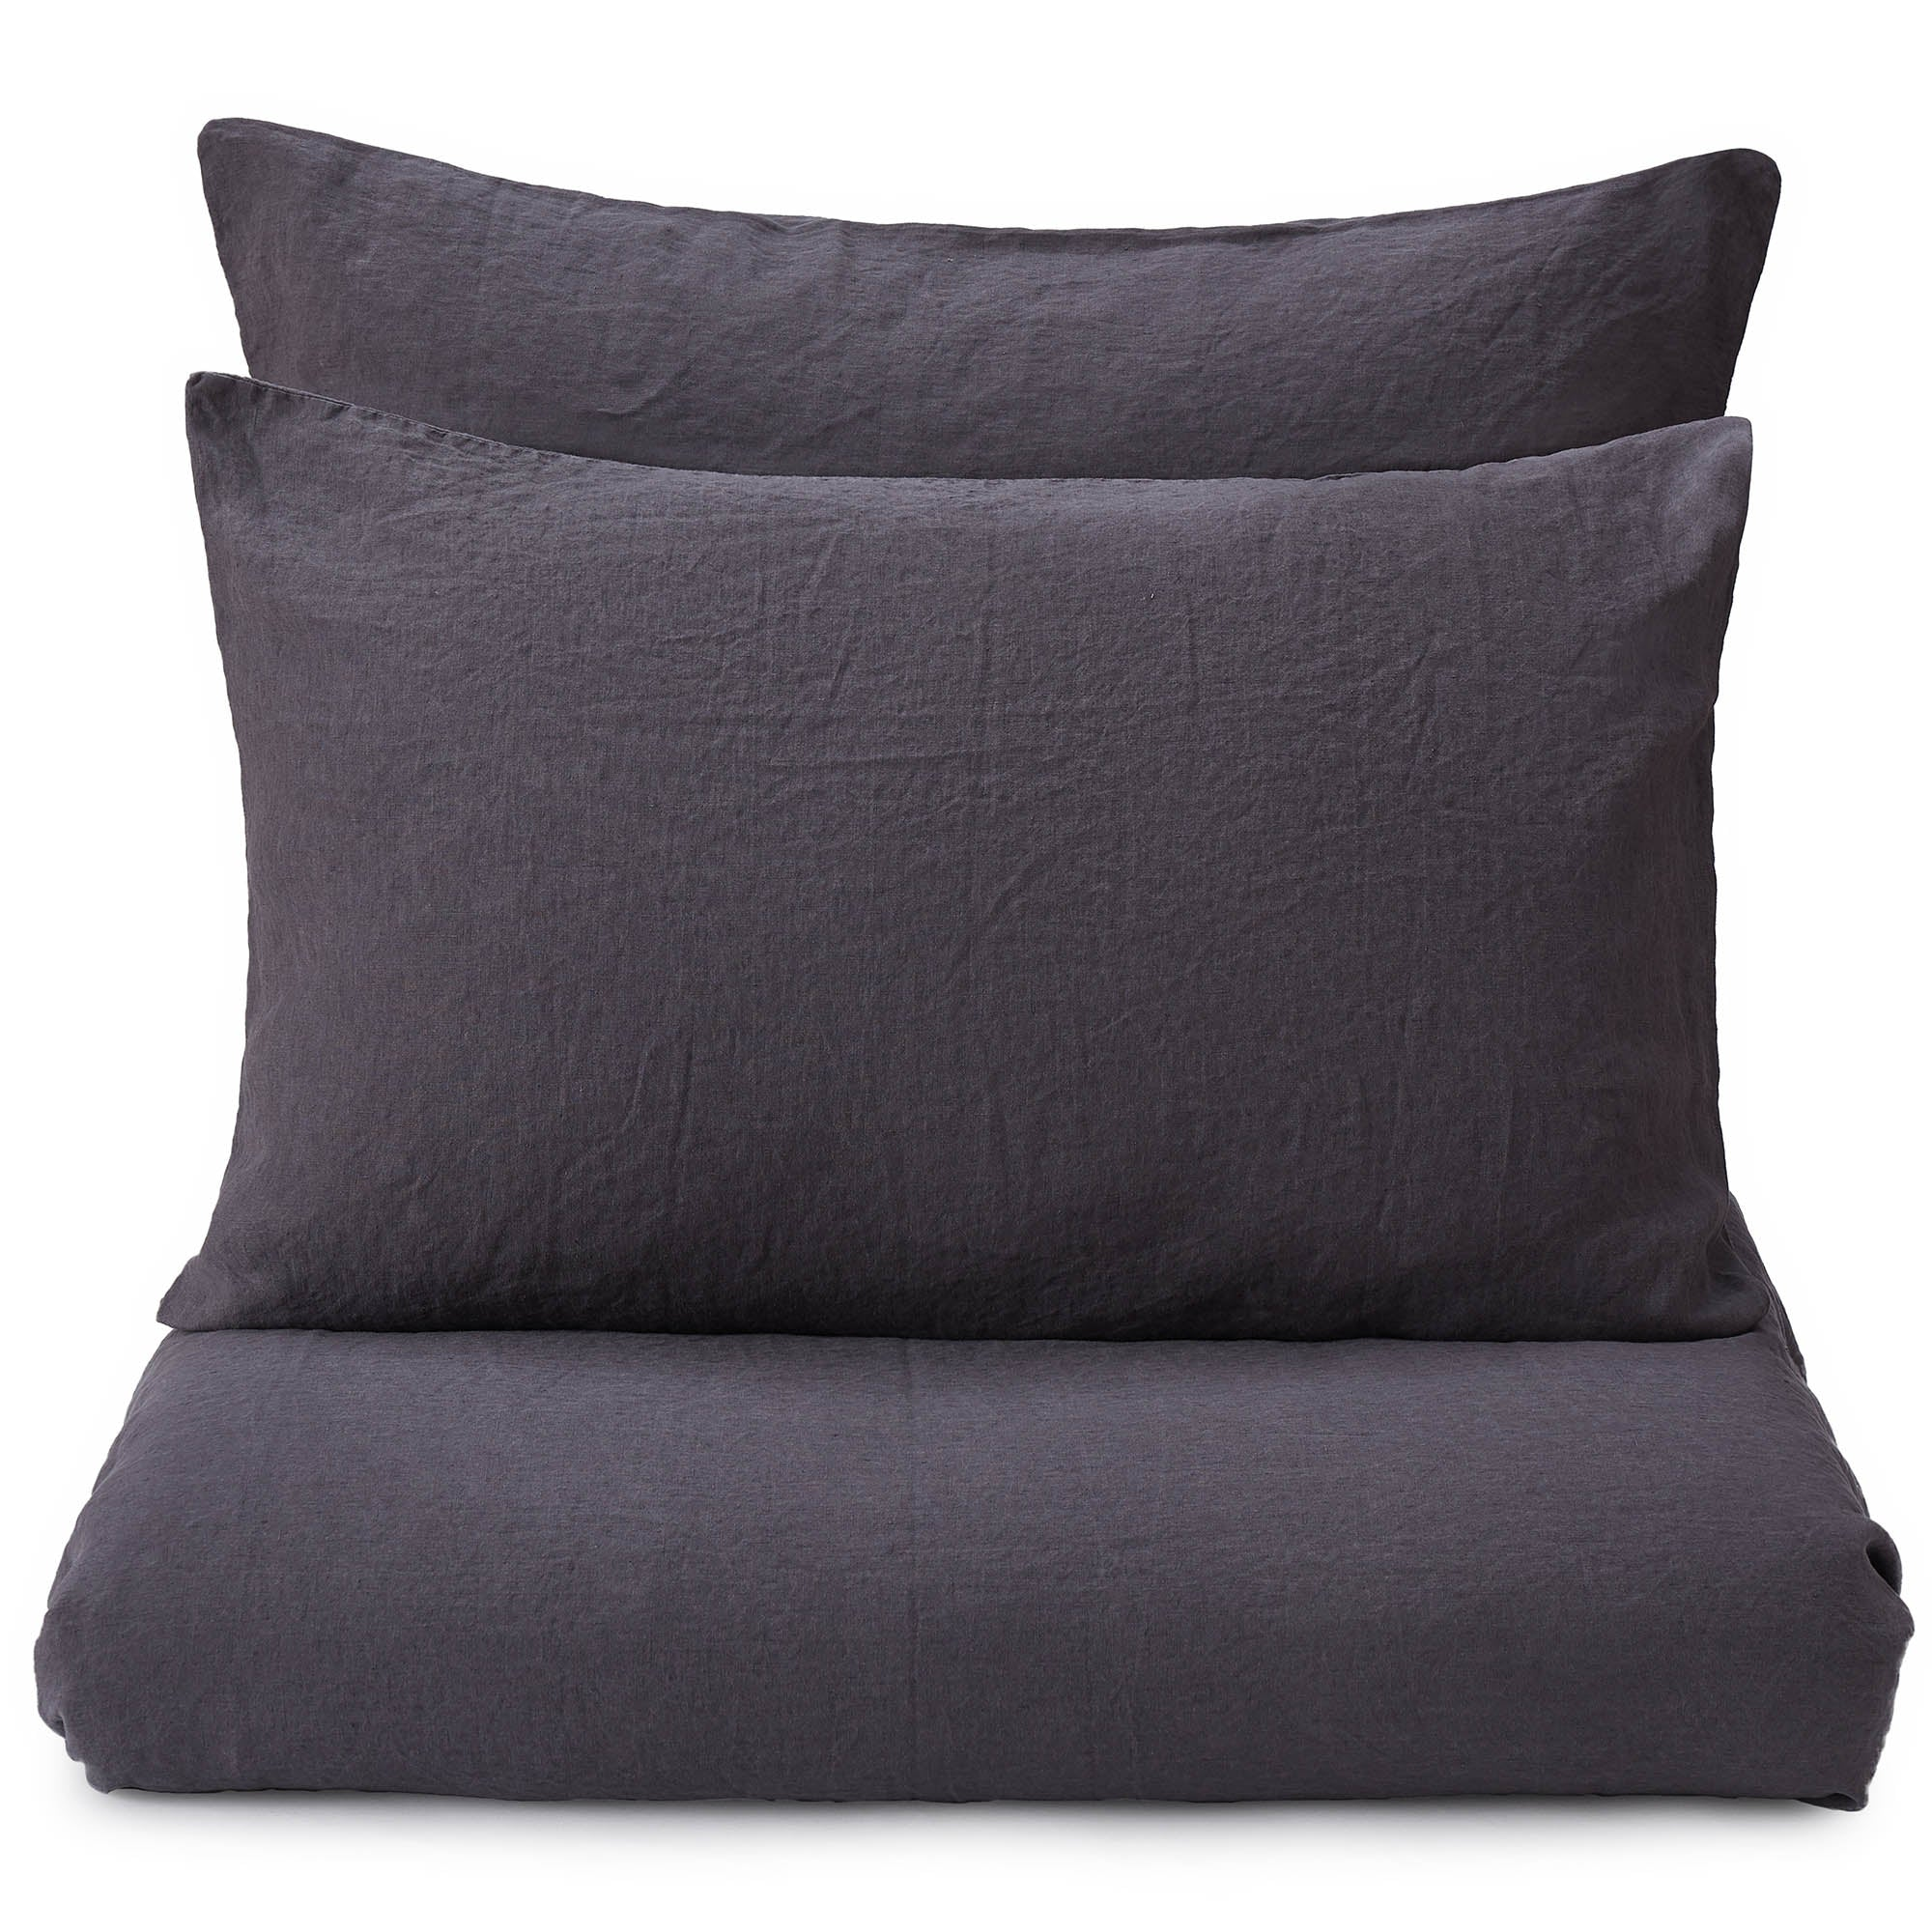 Mafalda Pillowcase [Dark grey]